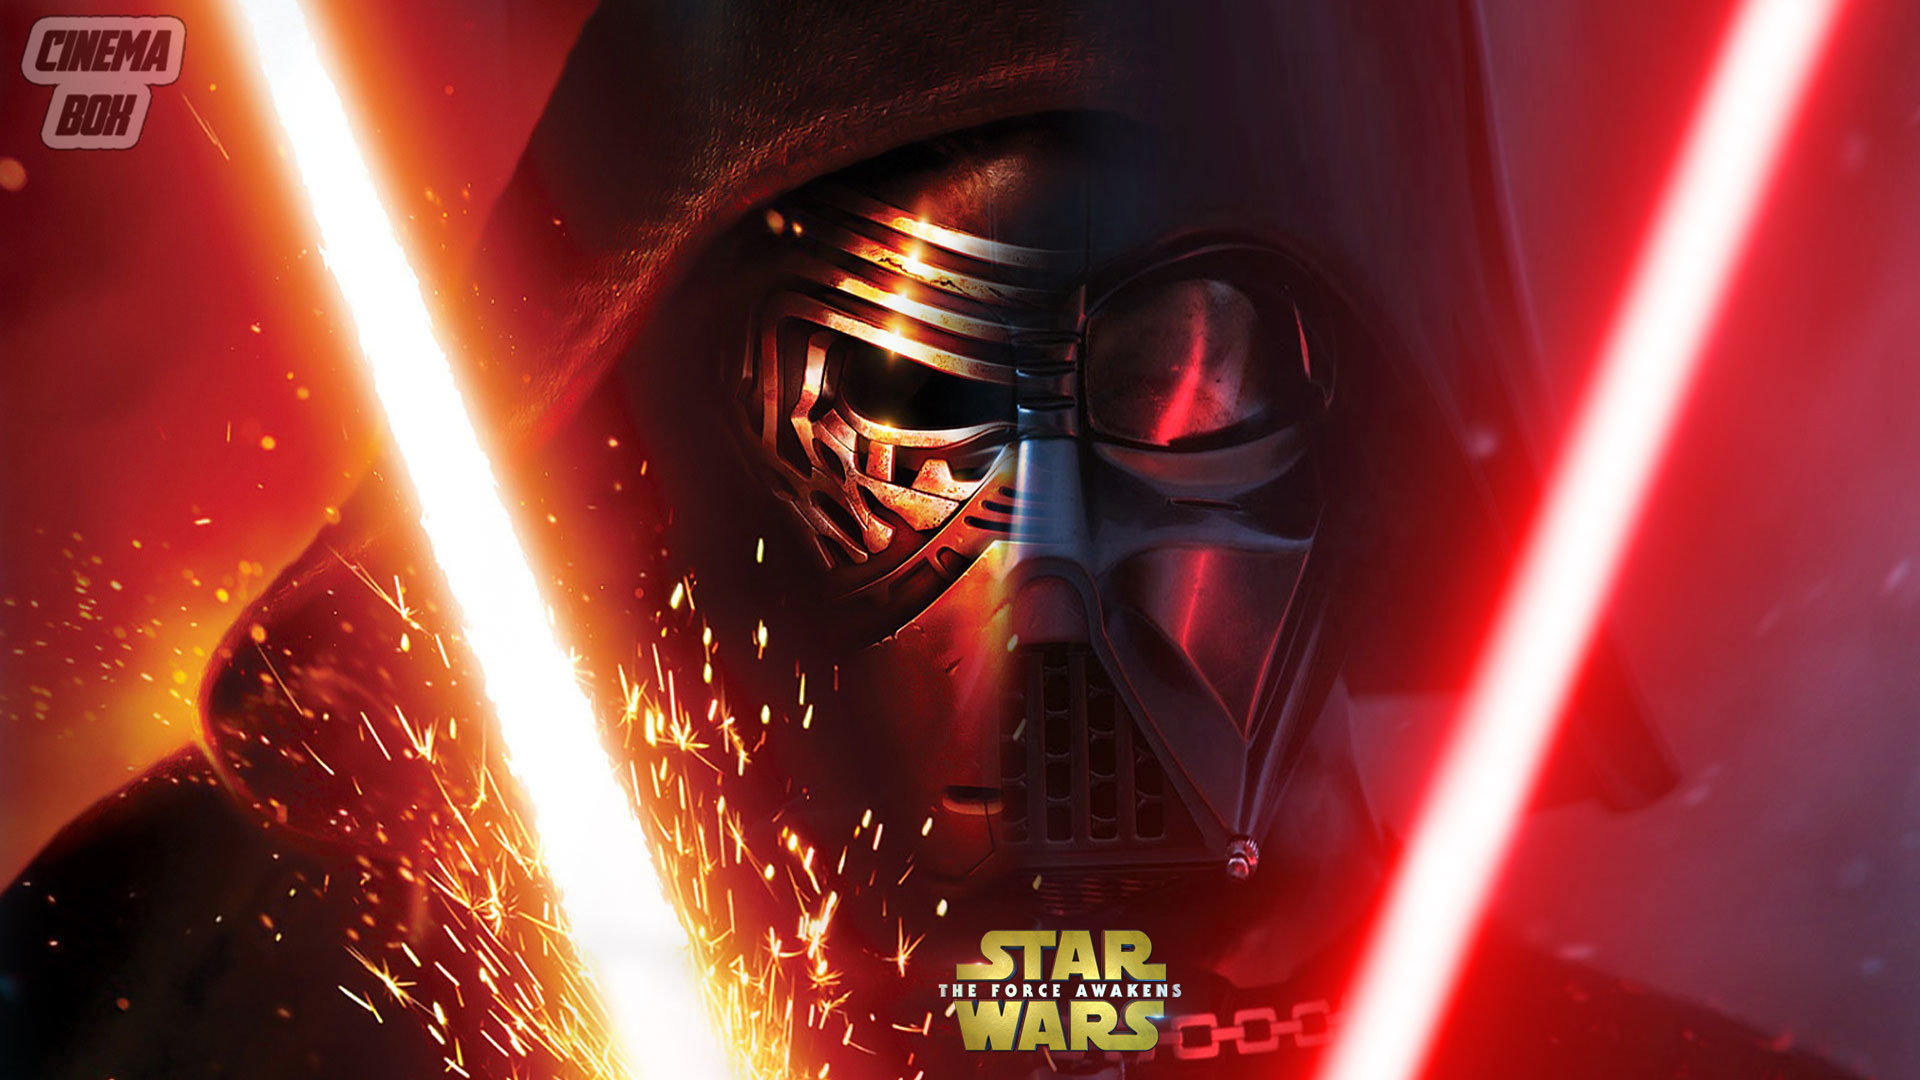 High Resolution Star Wars Episode 7 Vii The Force Awakens Full Hd 1080p Wallpaper Id